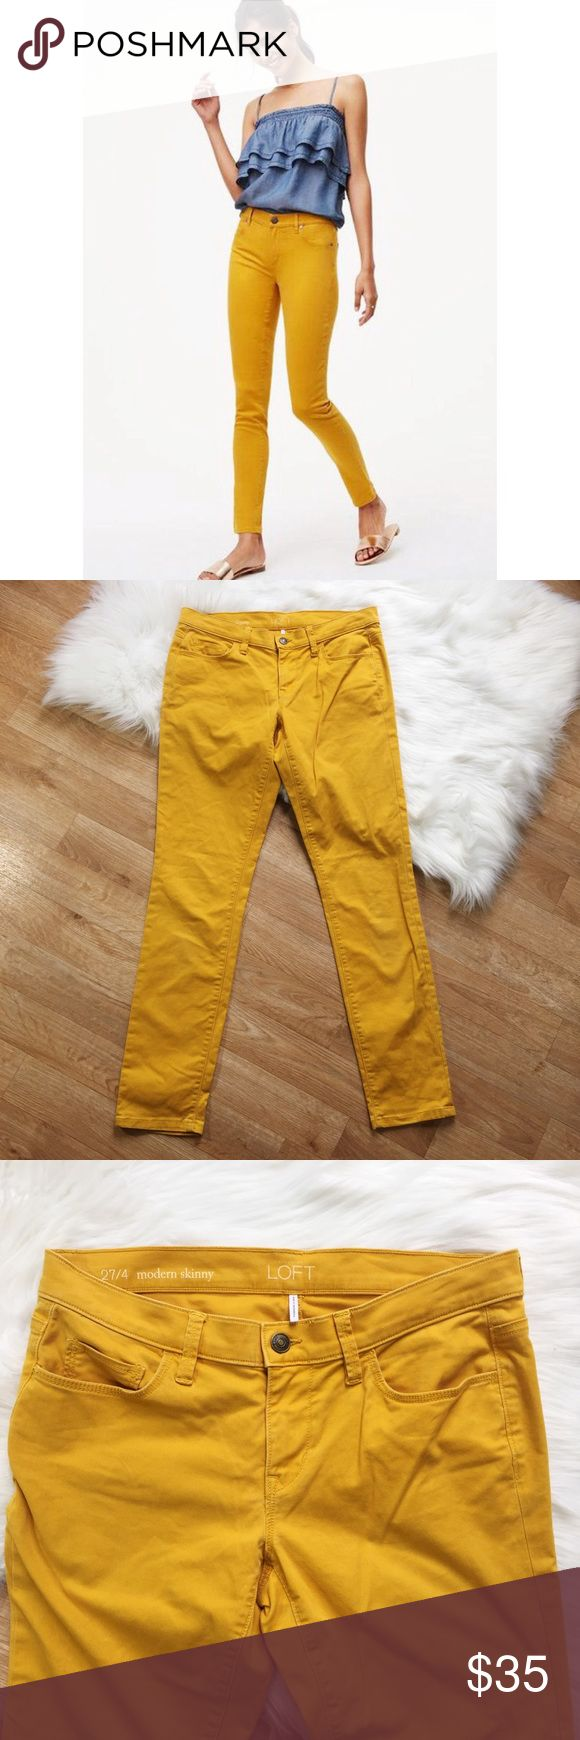 LOFT Yellow/Orange Skinny Jeans LOFT Yellow/Orange Skinny Jeans. Mid rise. Size 4.   Happy to answer any questions!  Thanks for looking!   OFFERS are welcome!  ** 10% off Bundles of 3+ ** Ships within 24 hours!  Smoke free home. No trades or Paypal. LOFT Jeans Skinny